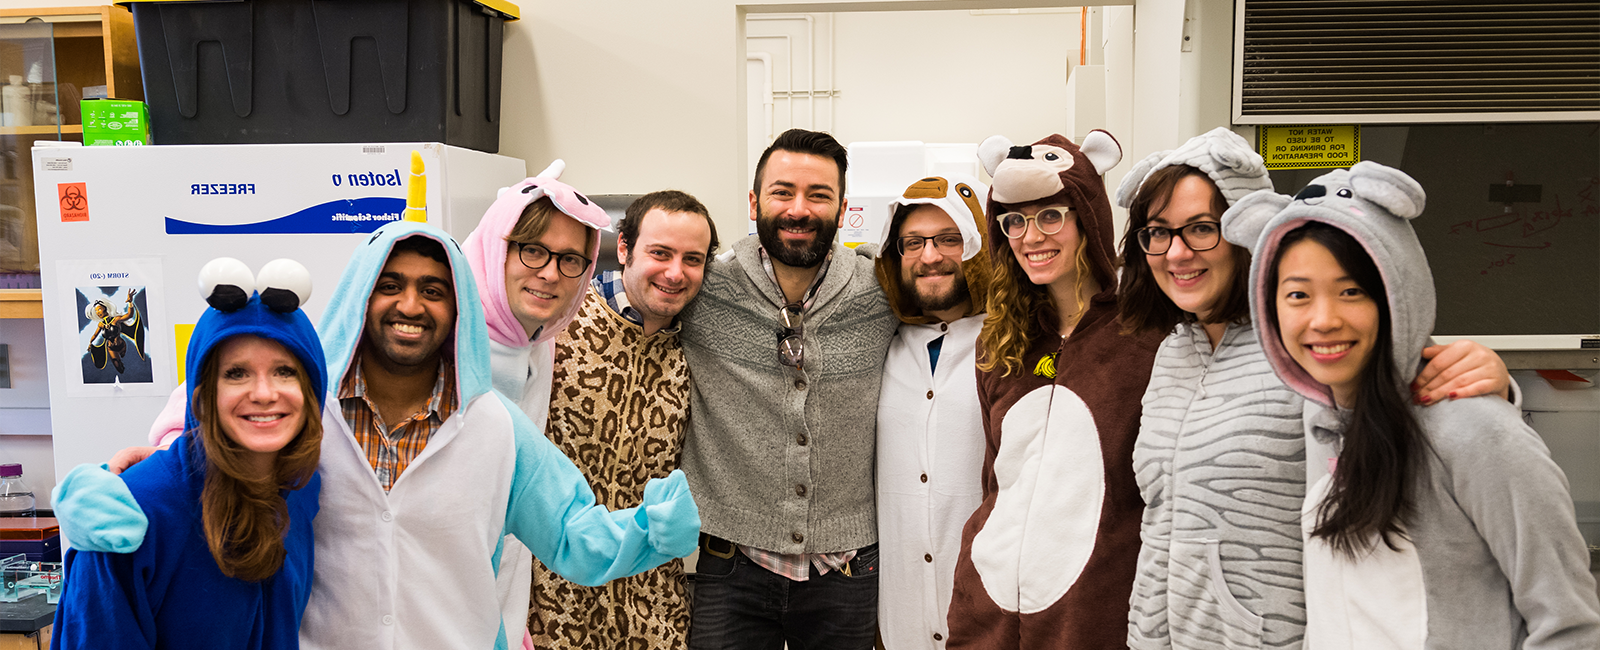 Professor Alex Shalek poses with members of his research group, who are jovially dressed in animal onesies.